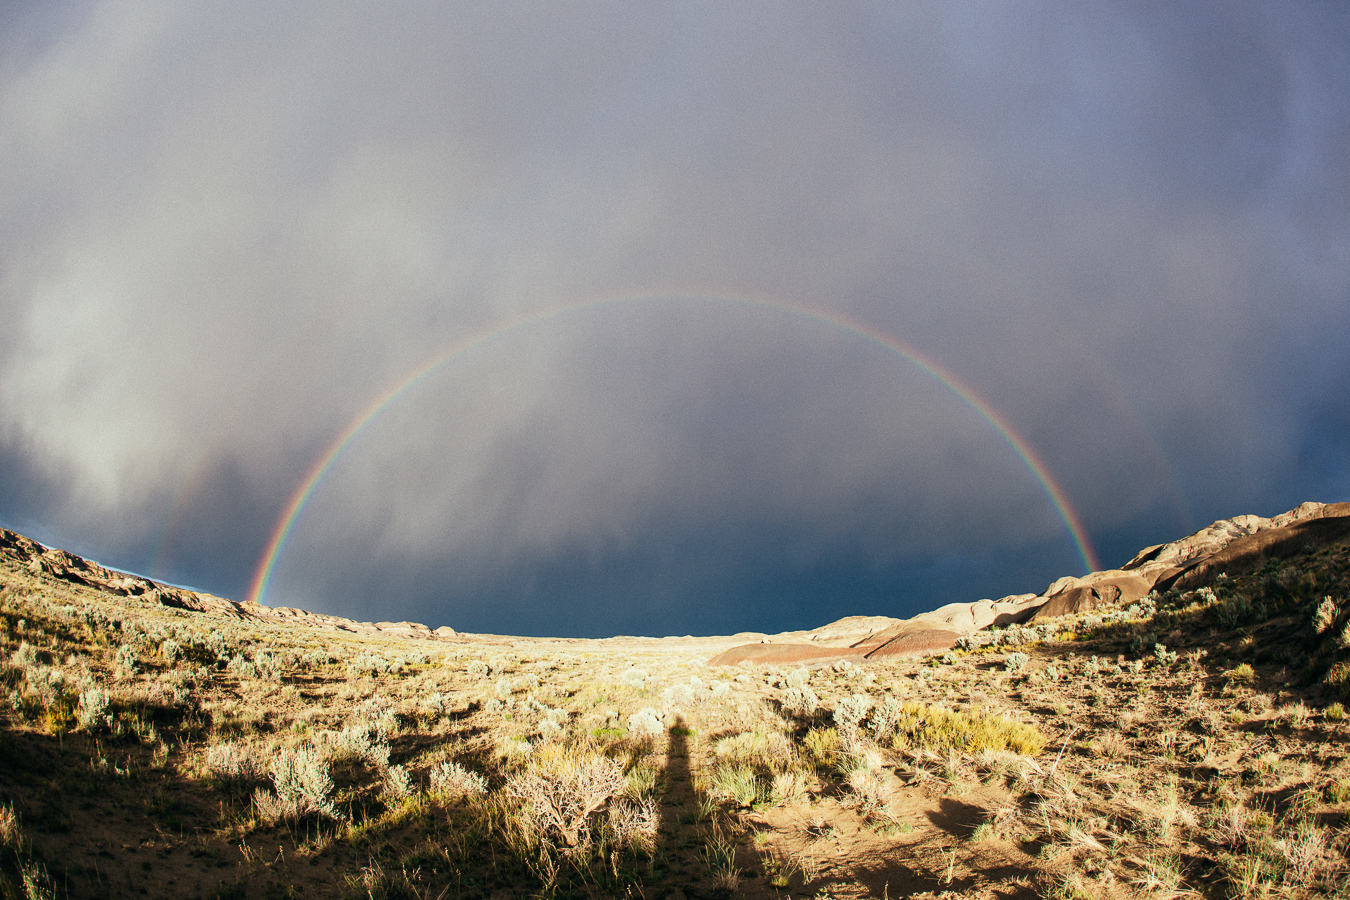 At least I got this full rainbow photo, kind double-rainbow actually!